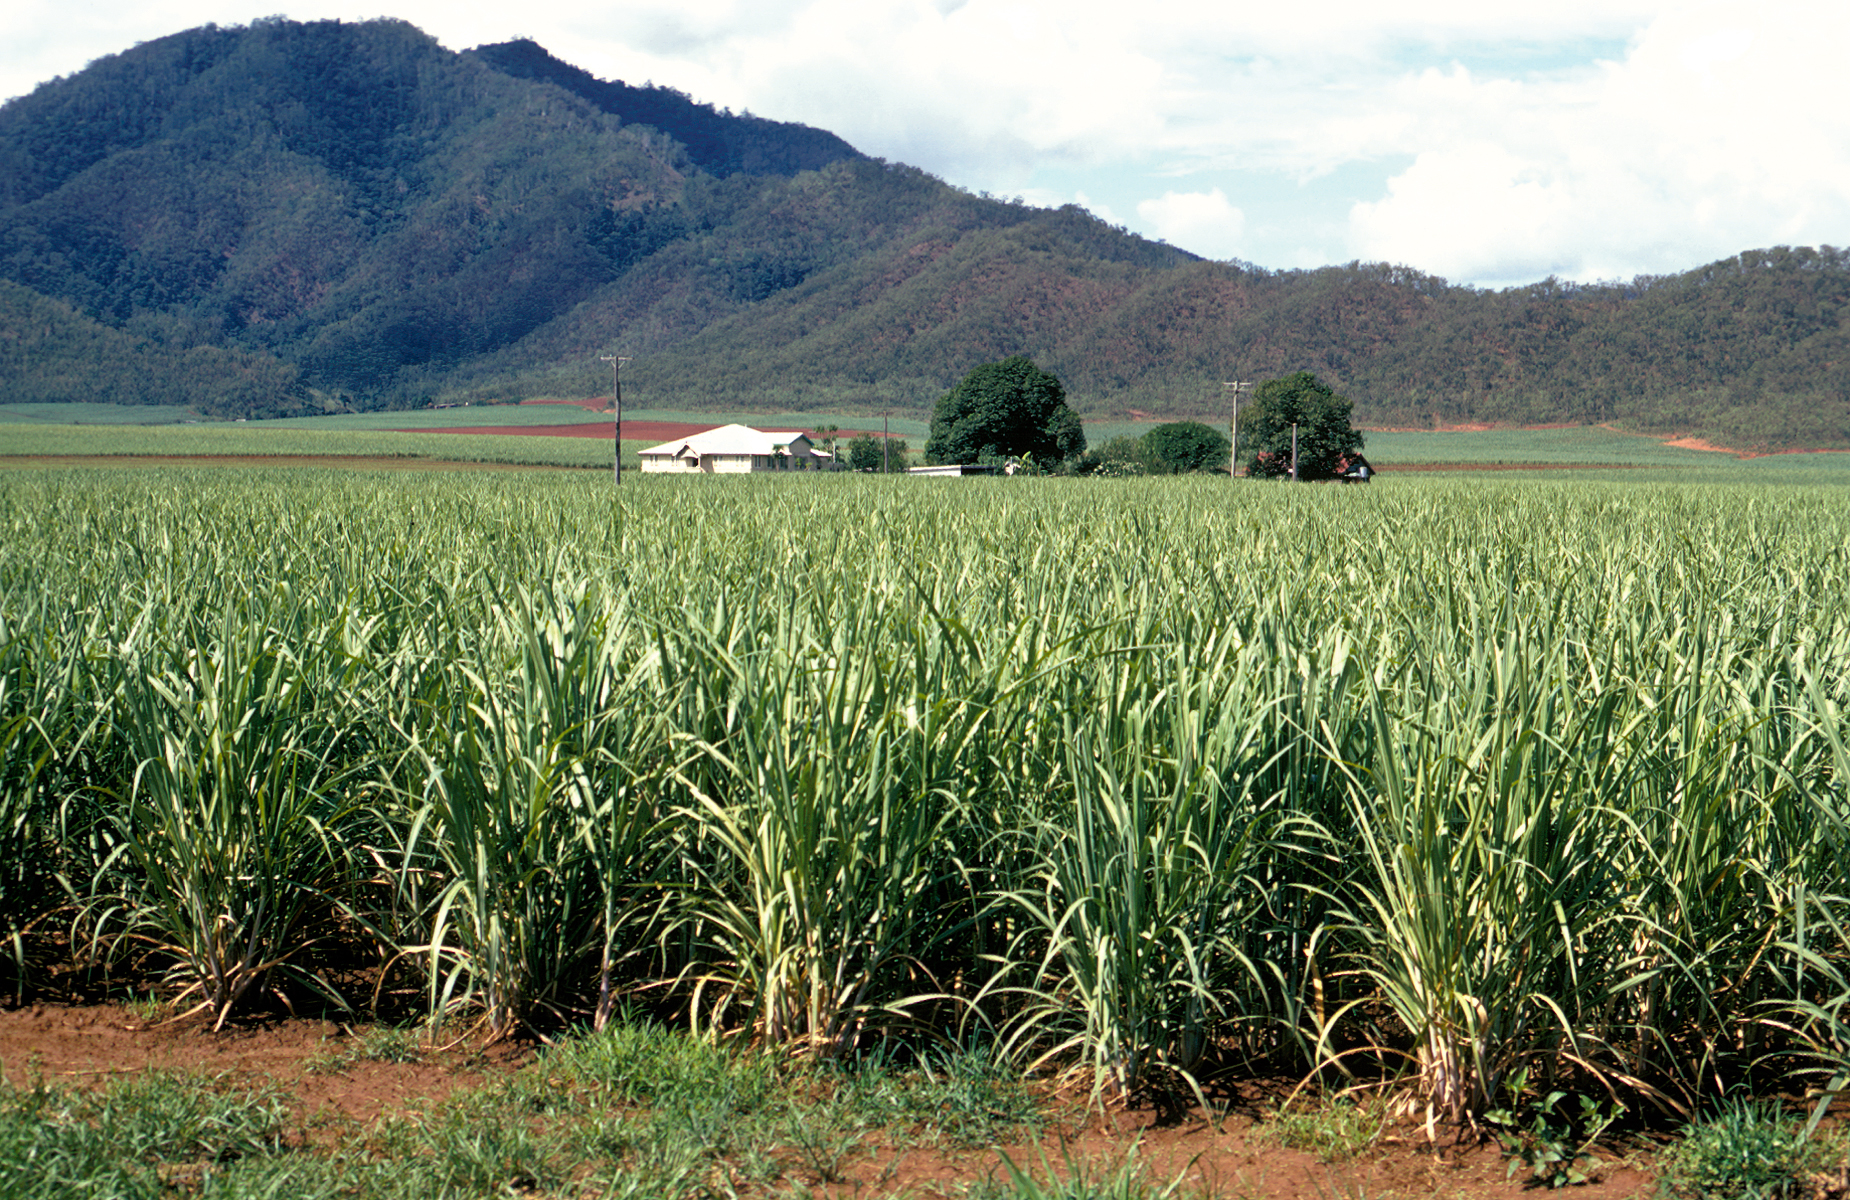 Sugar cane crop with mountain in background at Cairns, QLD.